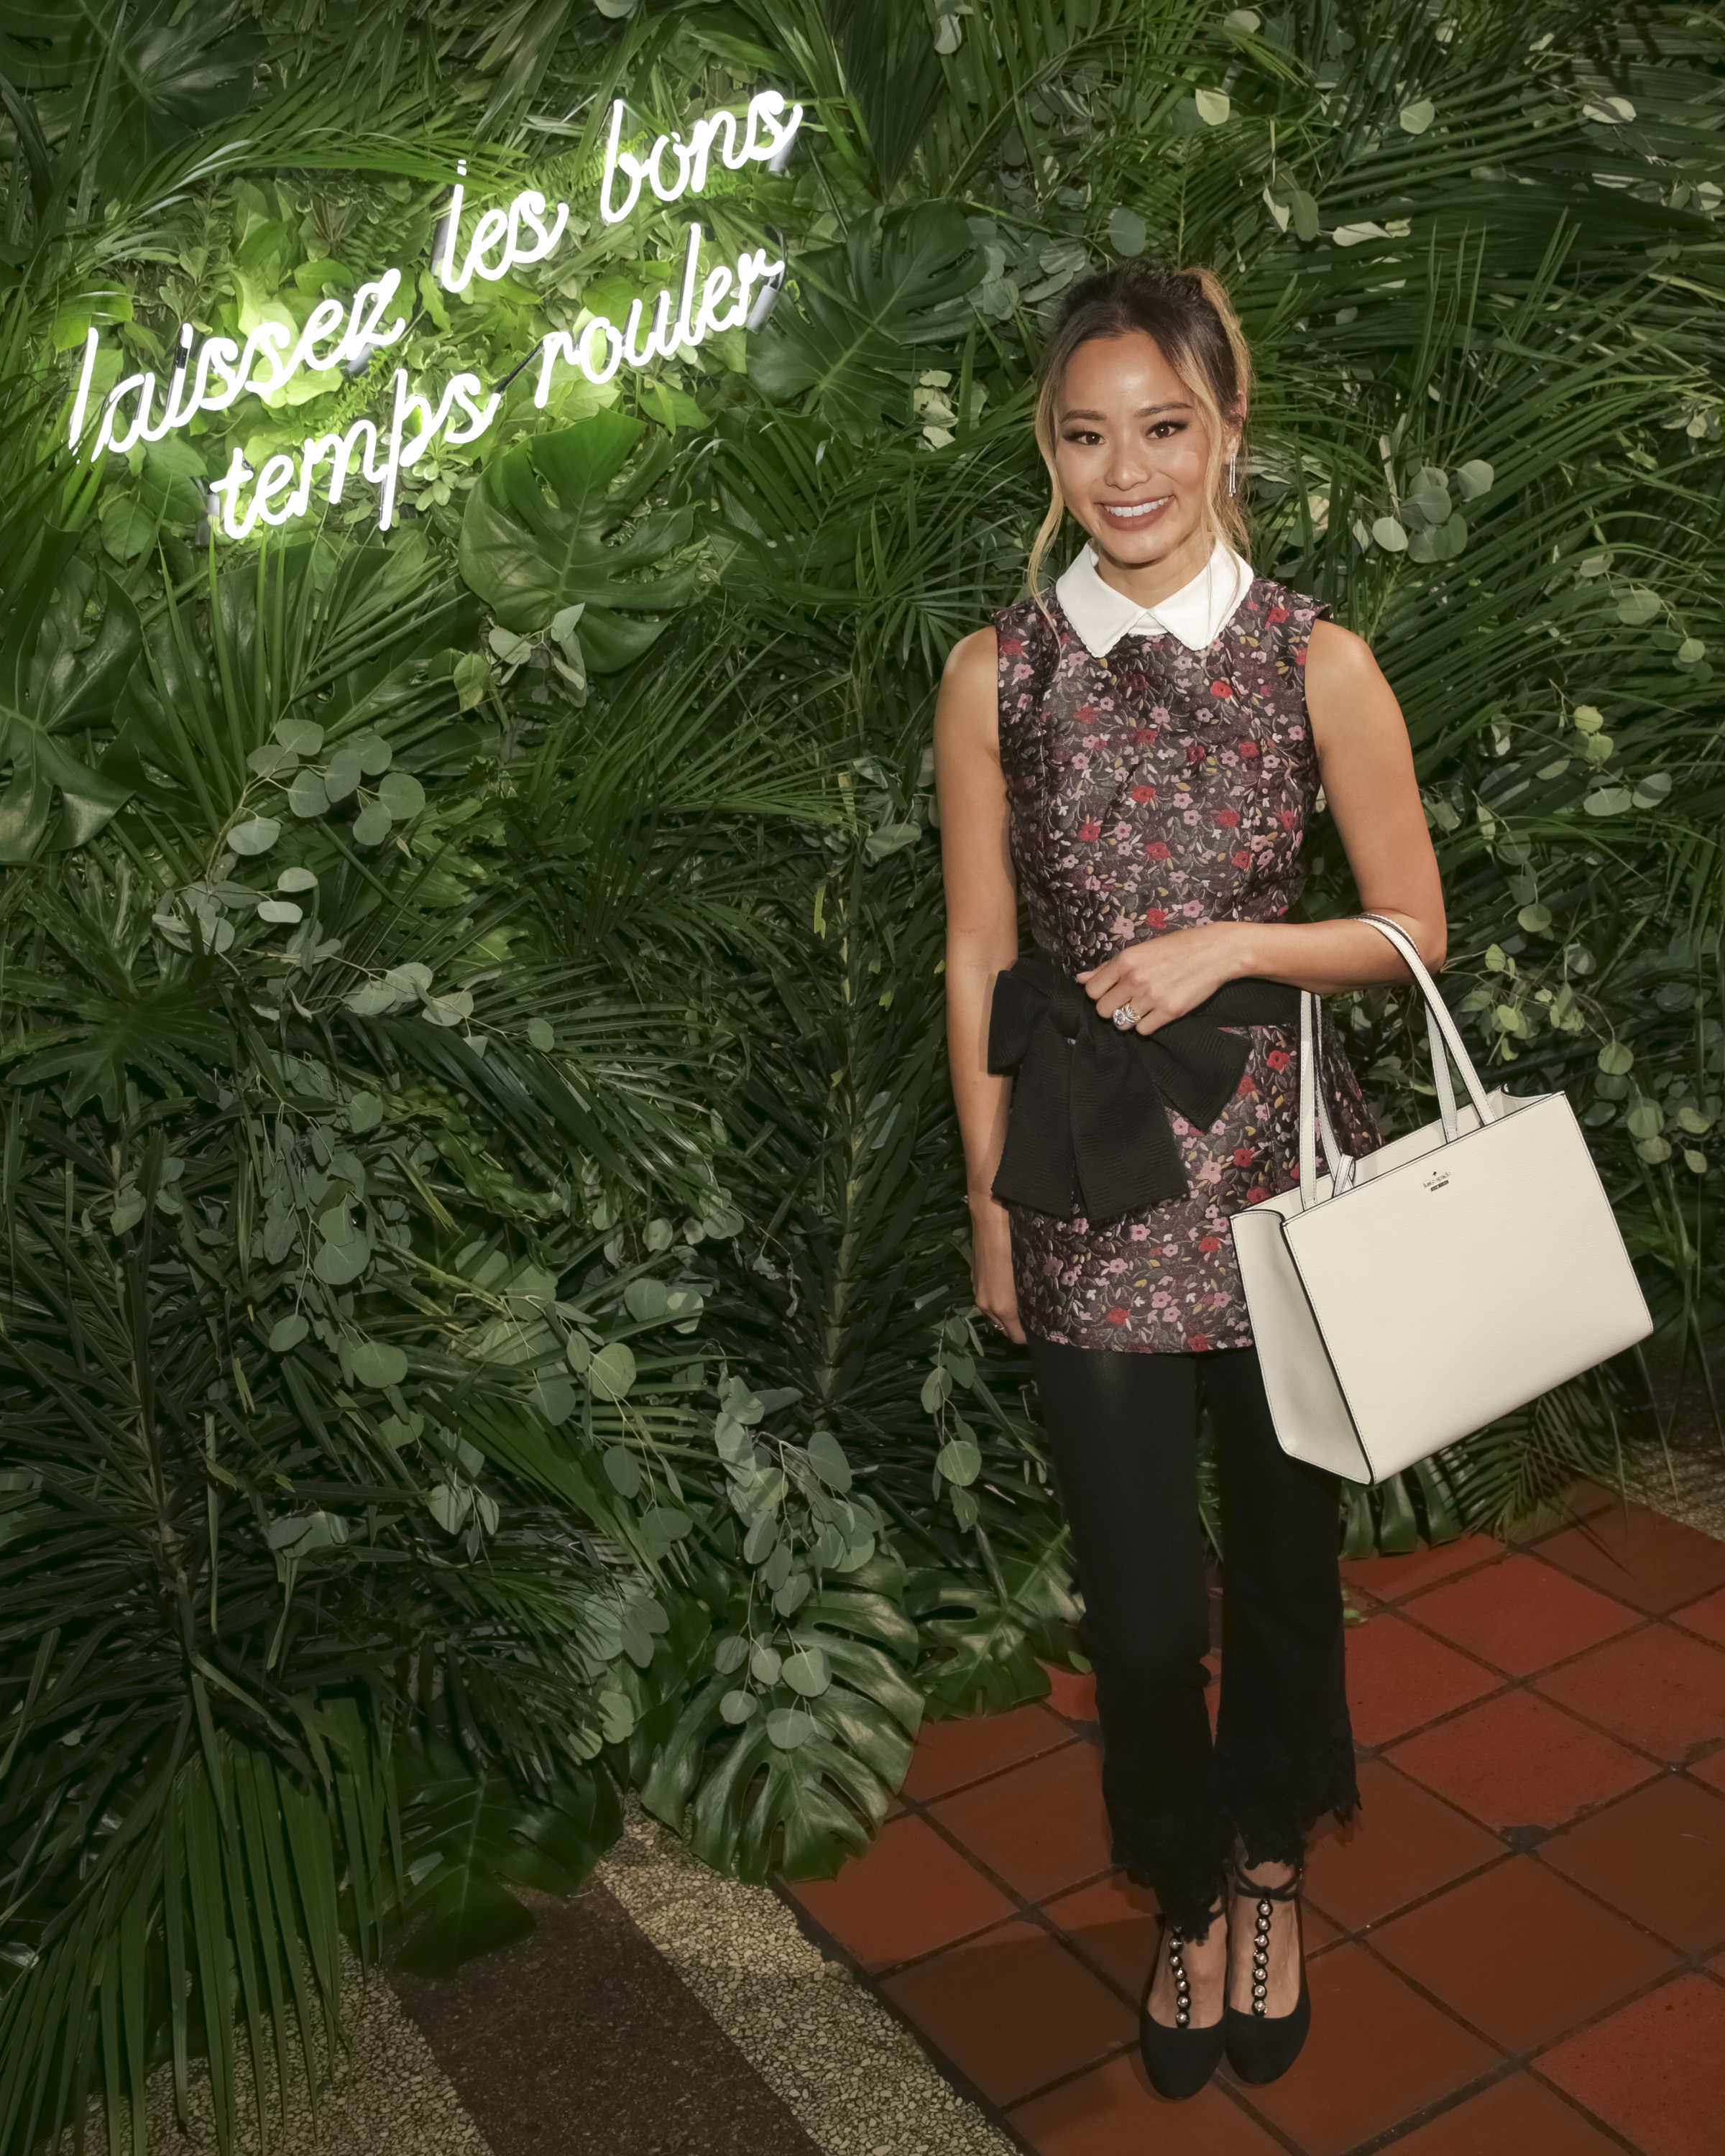 "<div class=""meta image-caption""><div class=""origin-logo origin-image ap""><span>AP</span></div><span class=""caption-text"">Actress Jamie Chung attends the Kate Spade 2018 Spring Presentation held at Grand Central Terminal on Friday, Sept. 8, 2017, in New York. (Photo by Brent N. Clarke/Invision/AP) (Brent N. Clarke/Invision/AP)</span></div>"